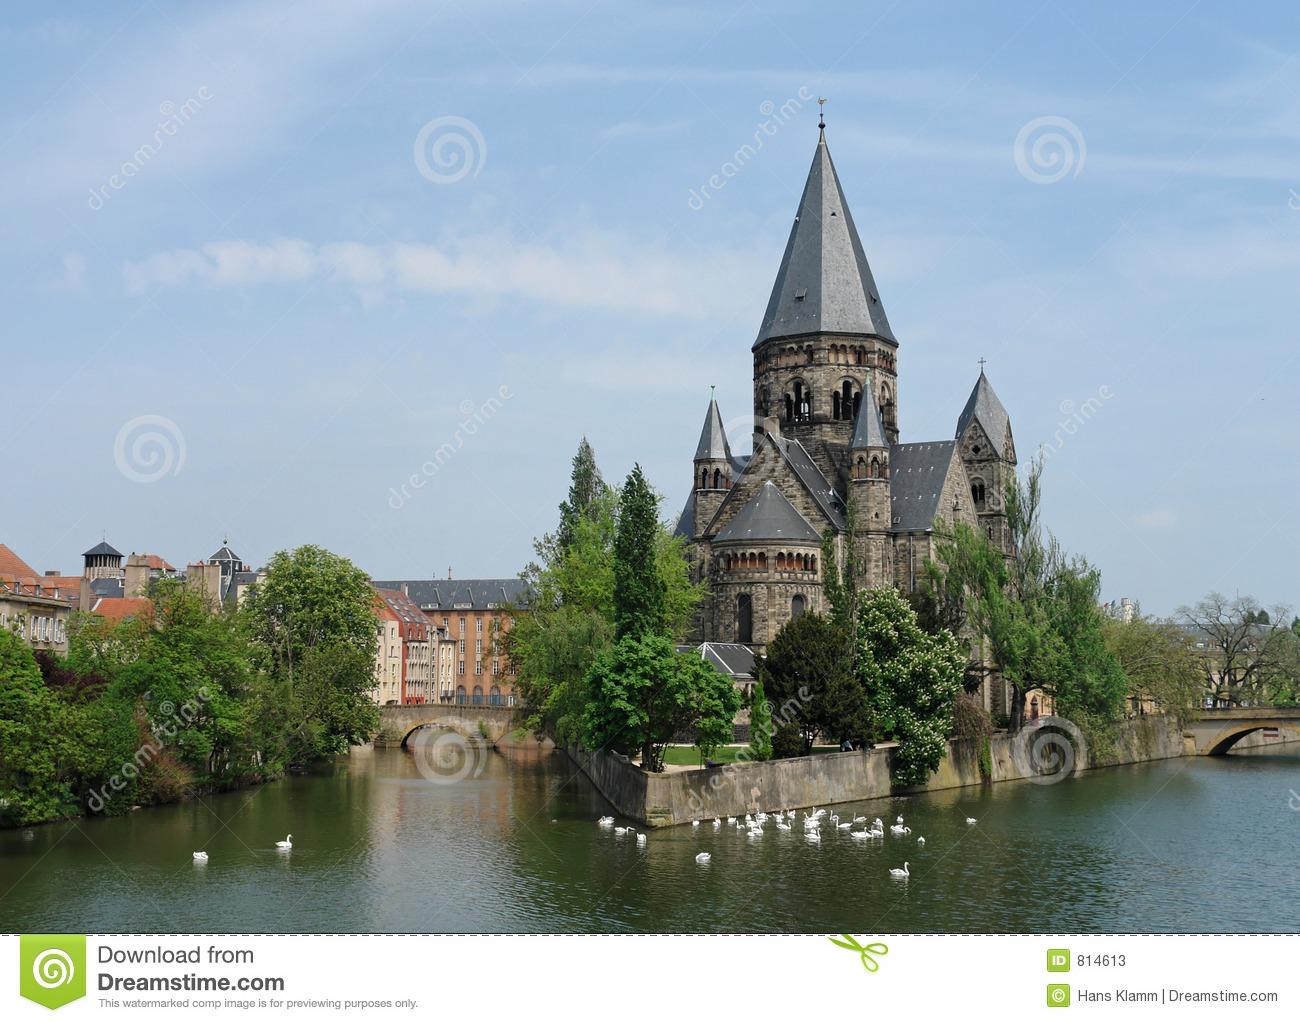 Metz church stock image image of swans romanesque town for Tarif chauffage urbain metz